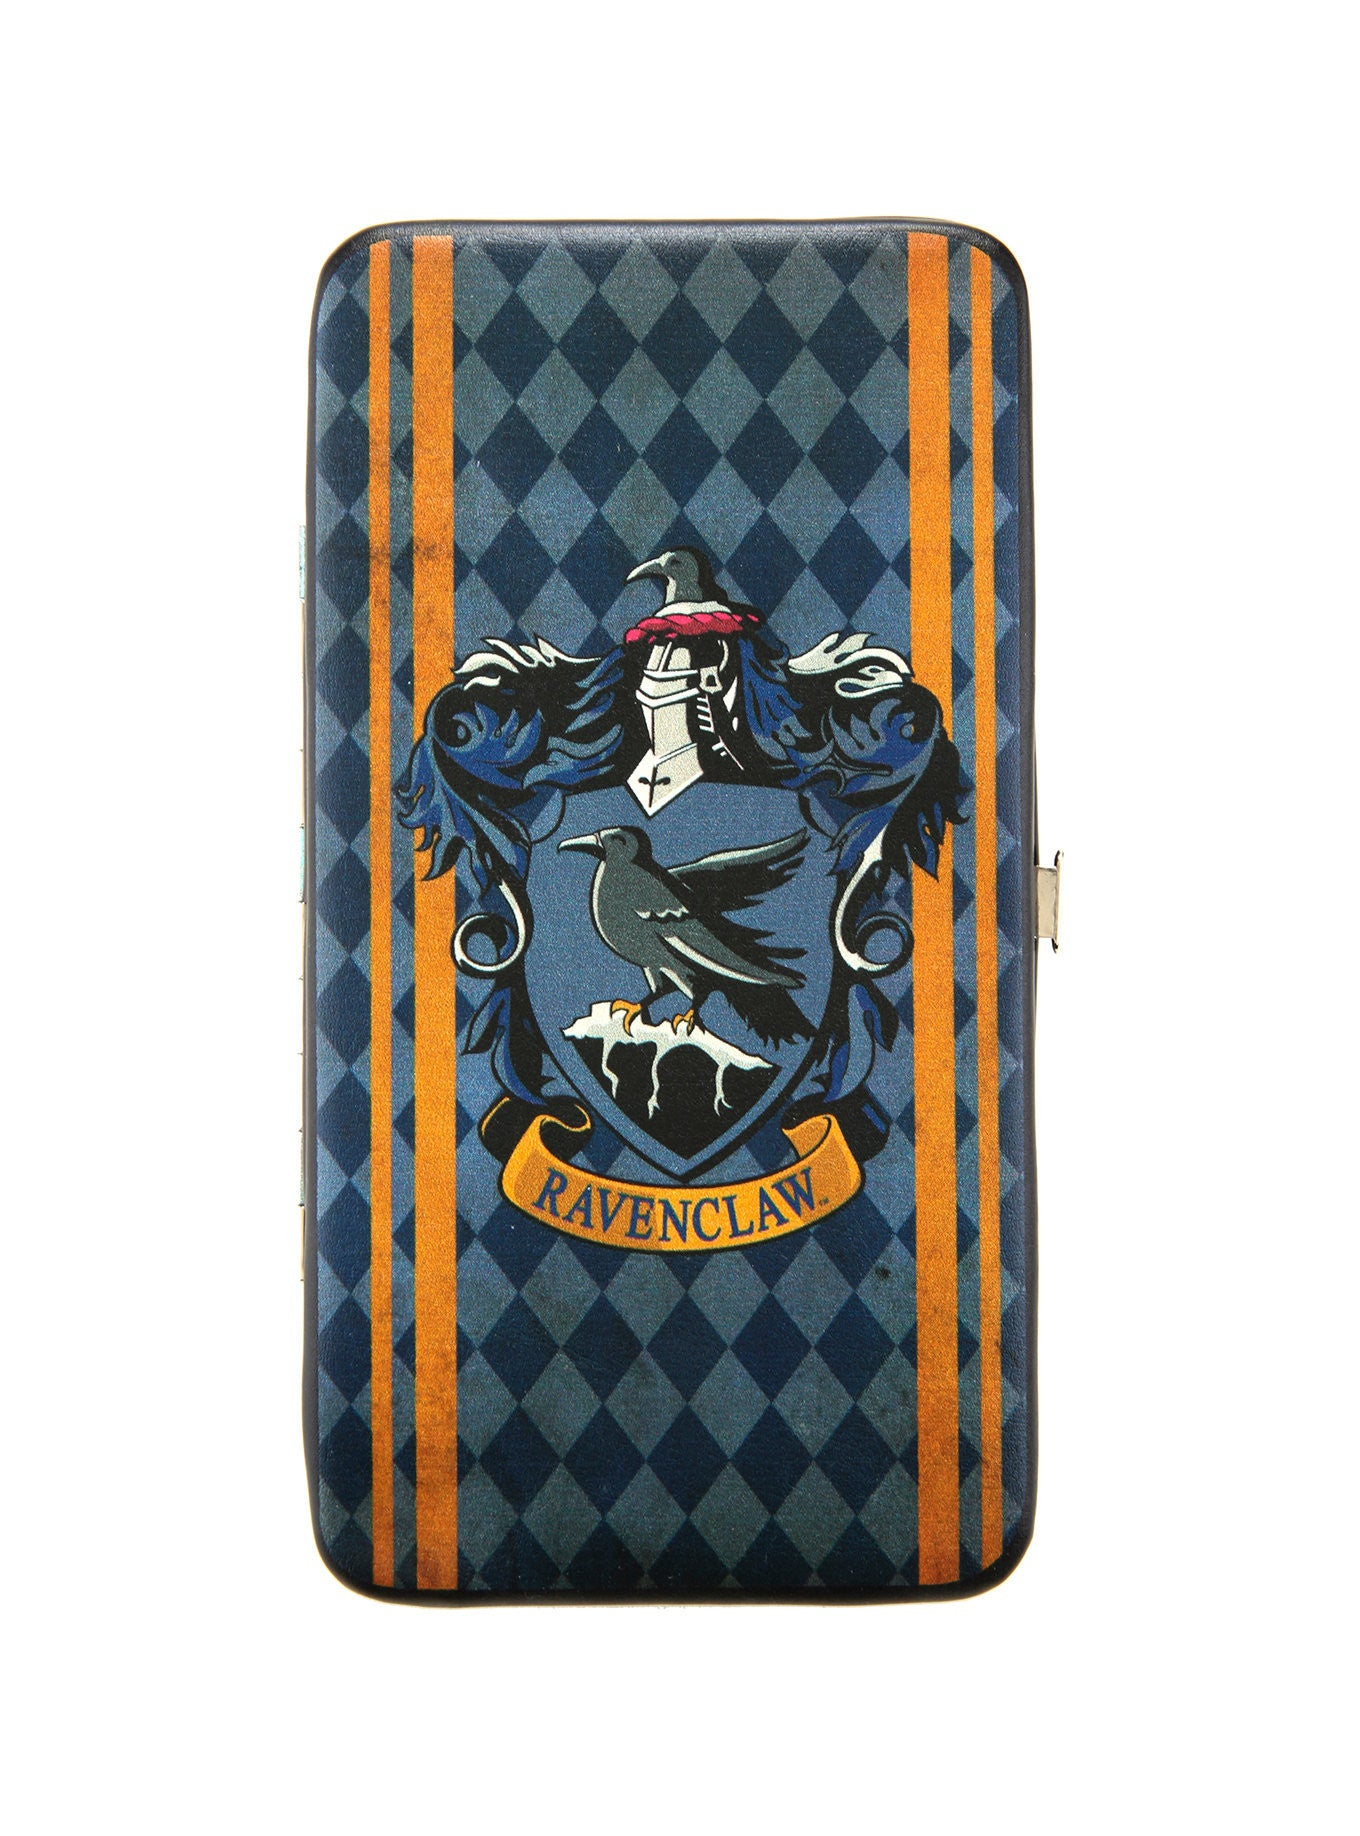 HARRY POTTER RAVENCLAW HOUSE CREST HINGE WALLET